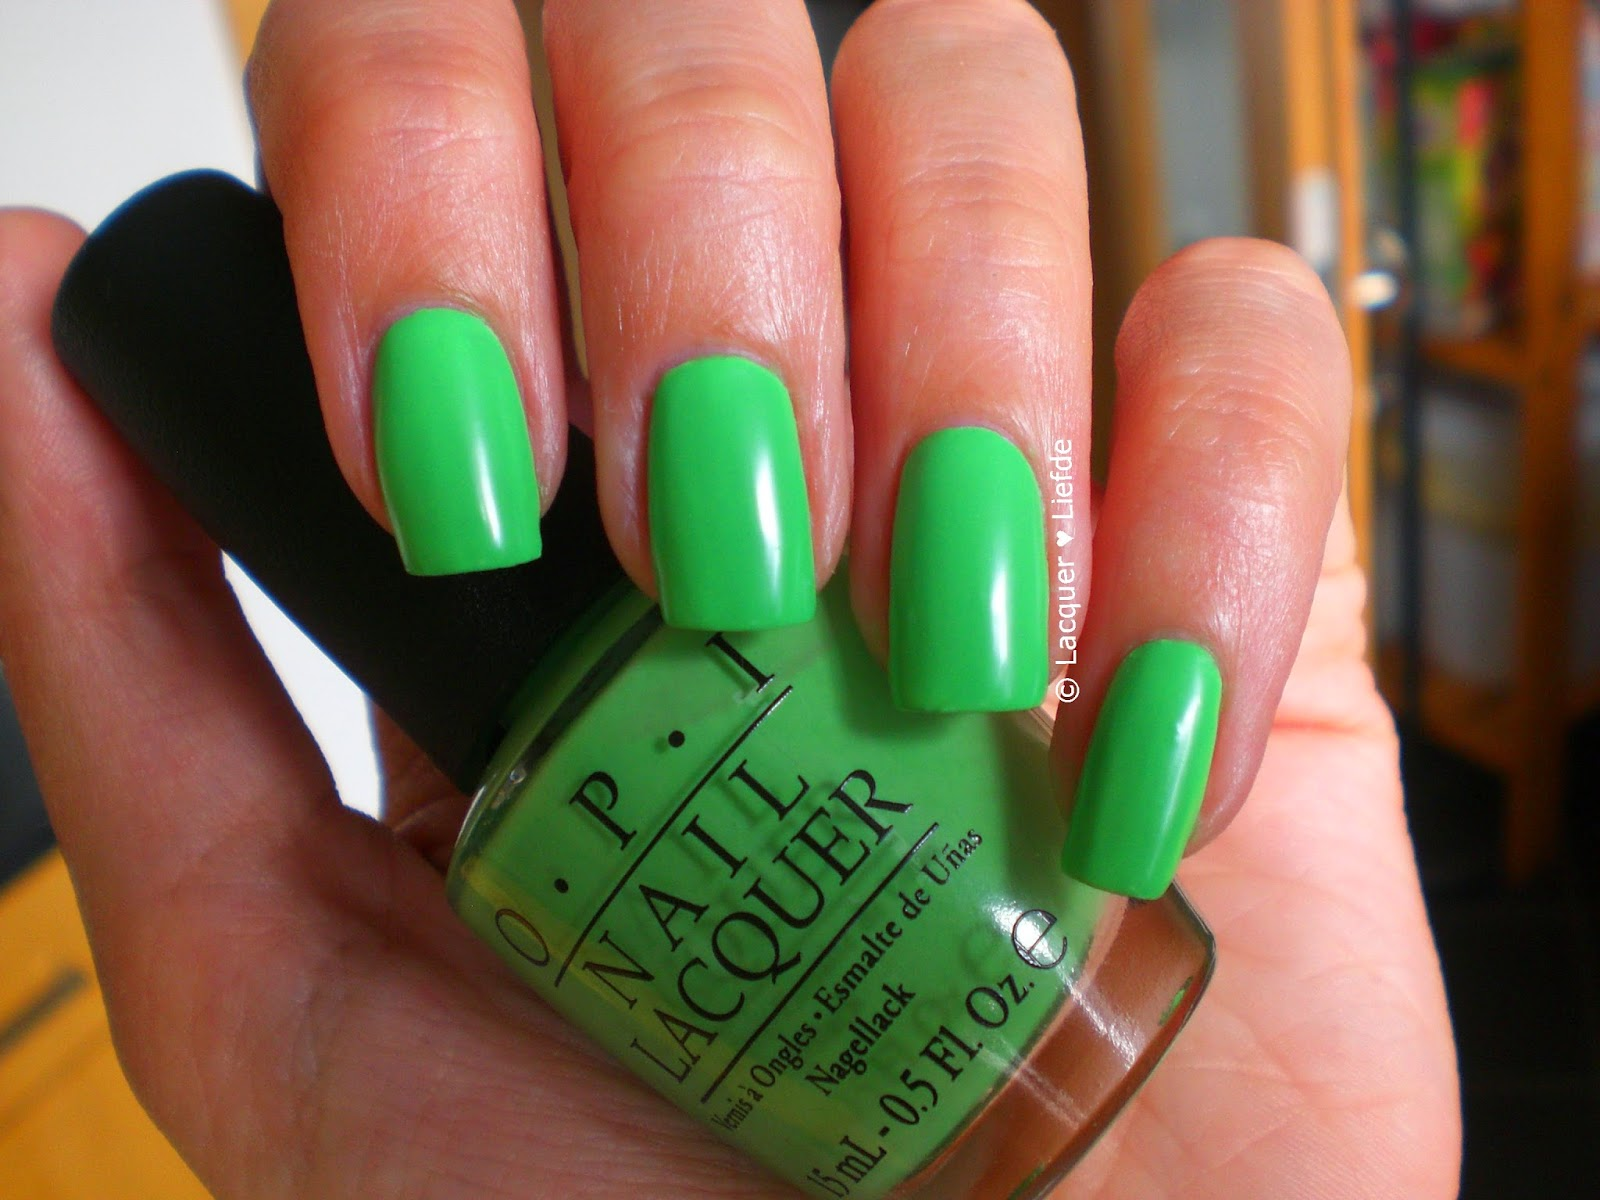 OPI Neons 2014 You are so outta lime!